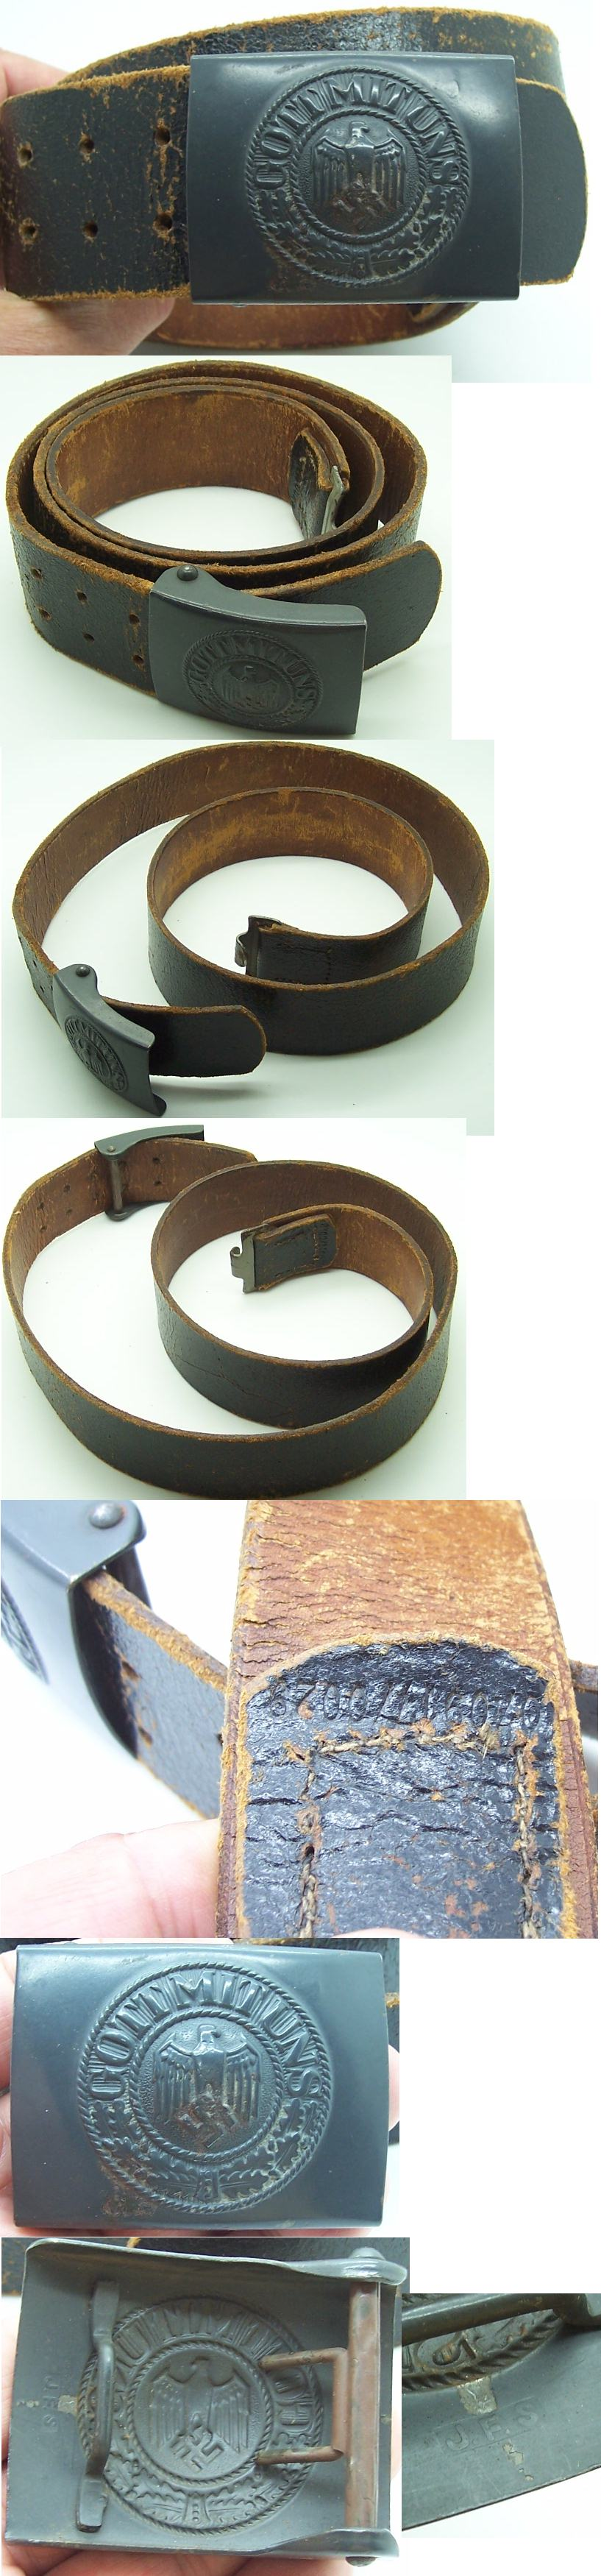 Costal Artillery Belt & Buckle by JFS